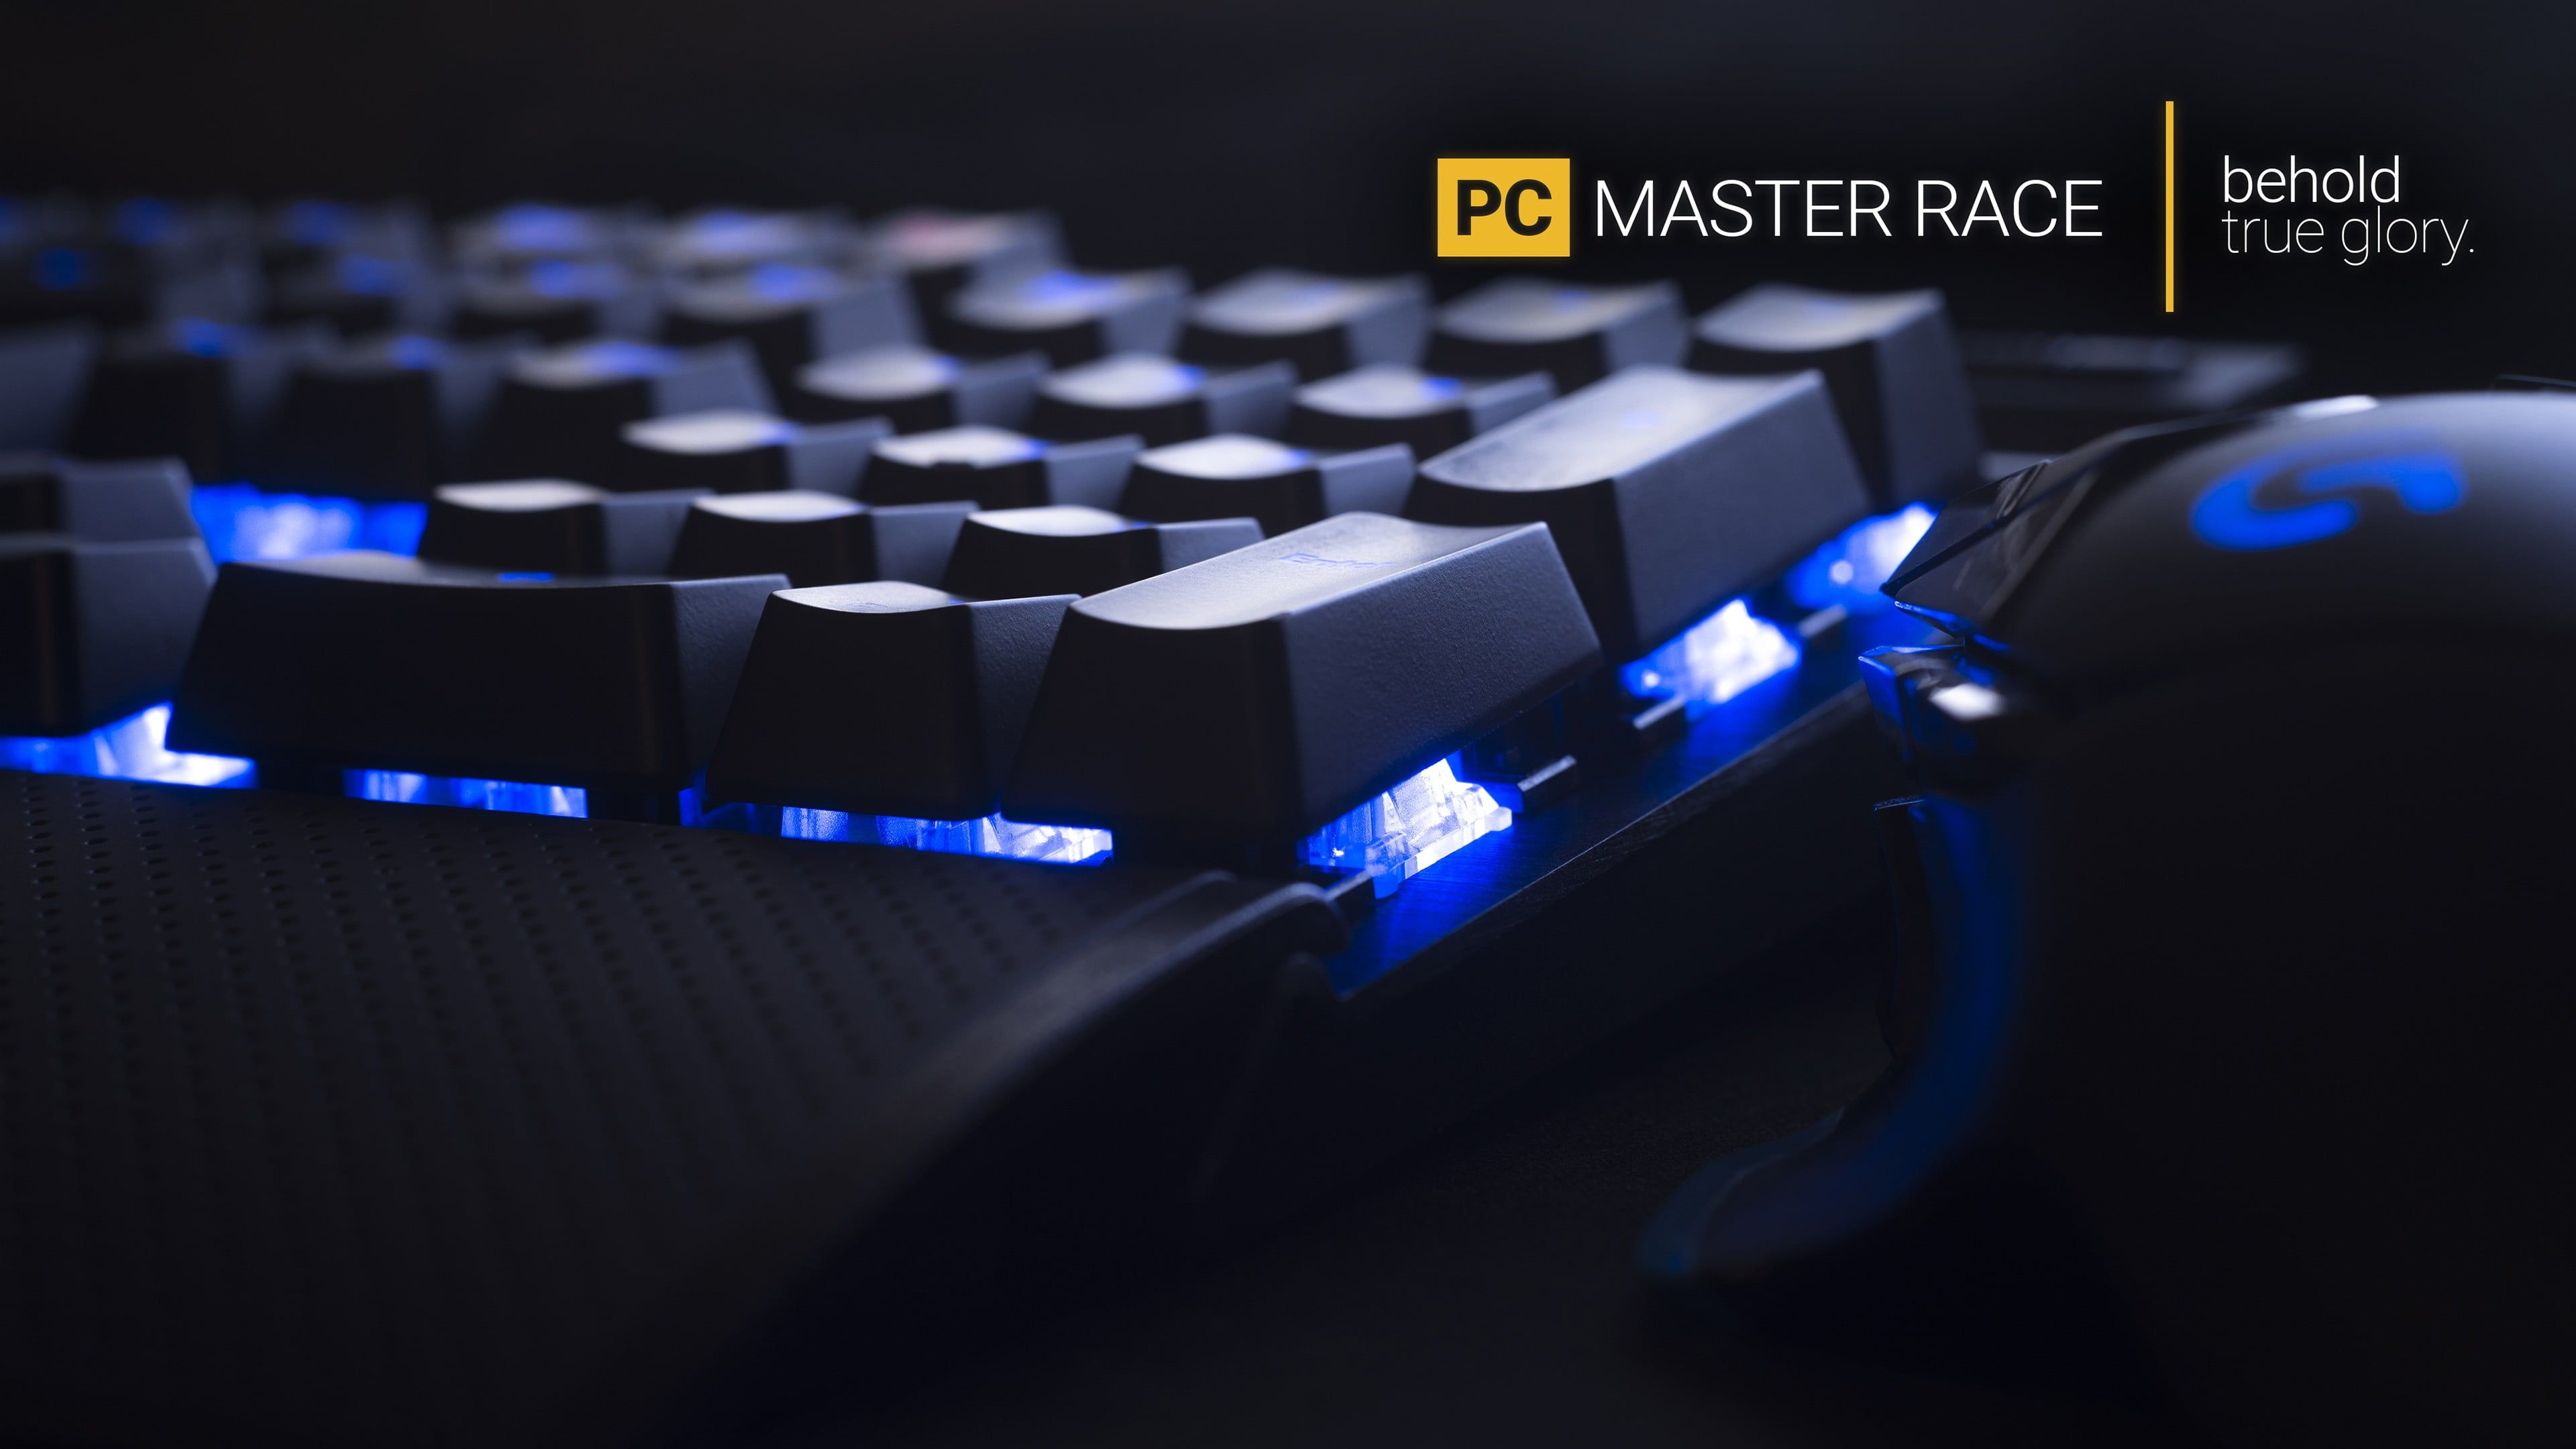 Black Logitech Gaming Keyboard And Mouse Pc Gaming Master Race Keyboards Technology Computer Mice Hardware Comp Hd Wallpapers For Pc Gaming Pc Computer Set